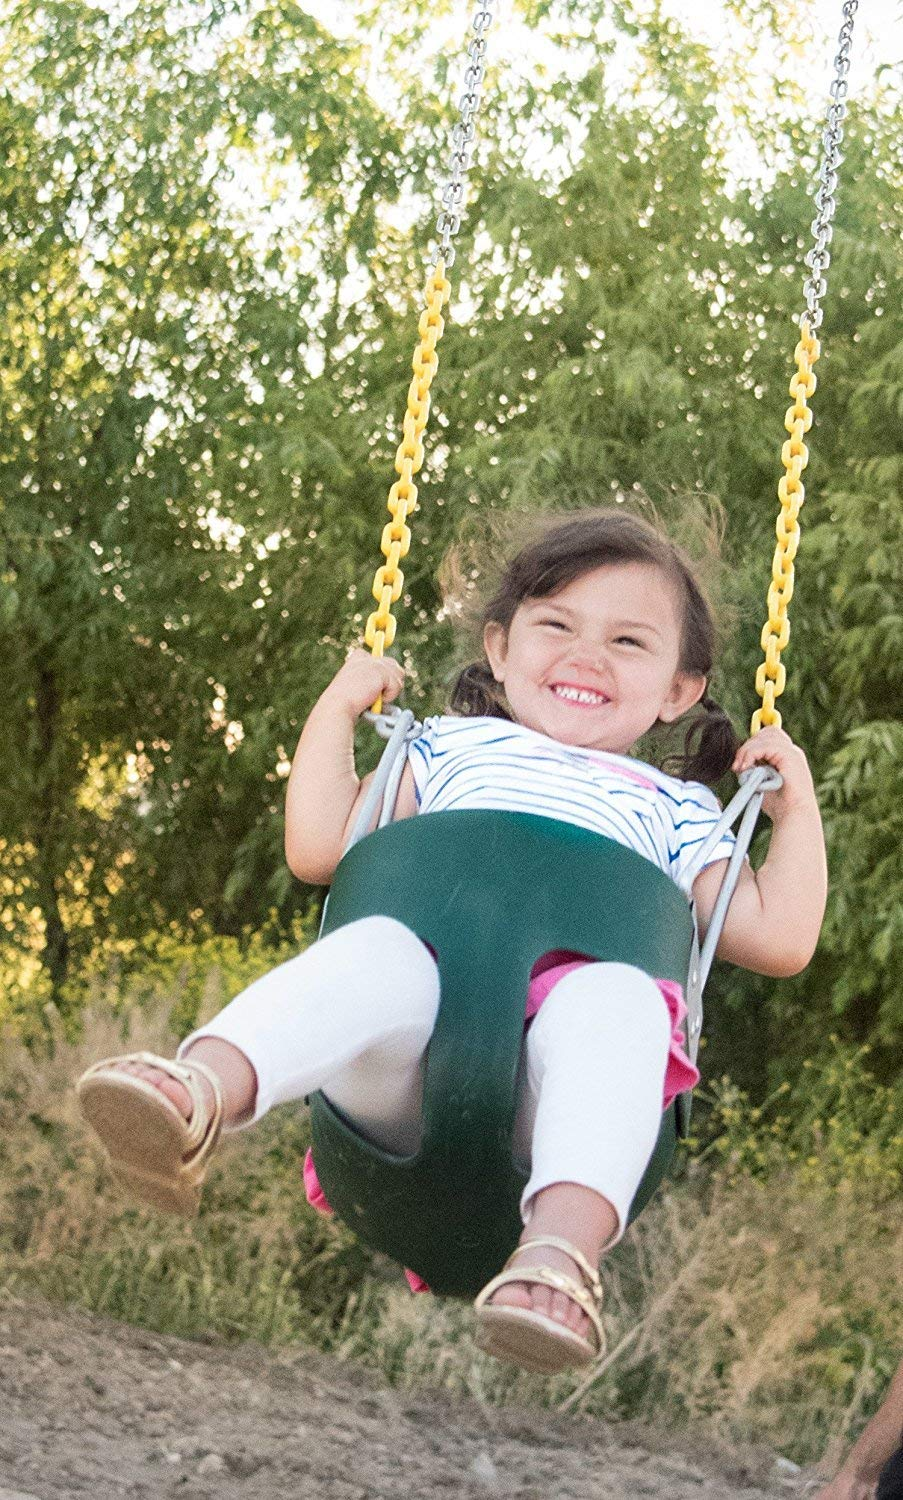 High Back Full Bucket Swing and Heavy Duty Swing Seat - Swing Set Accessories by Squirrel Products (Image #4)